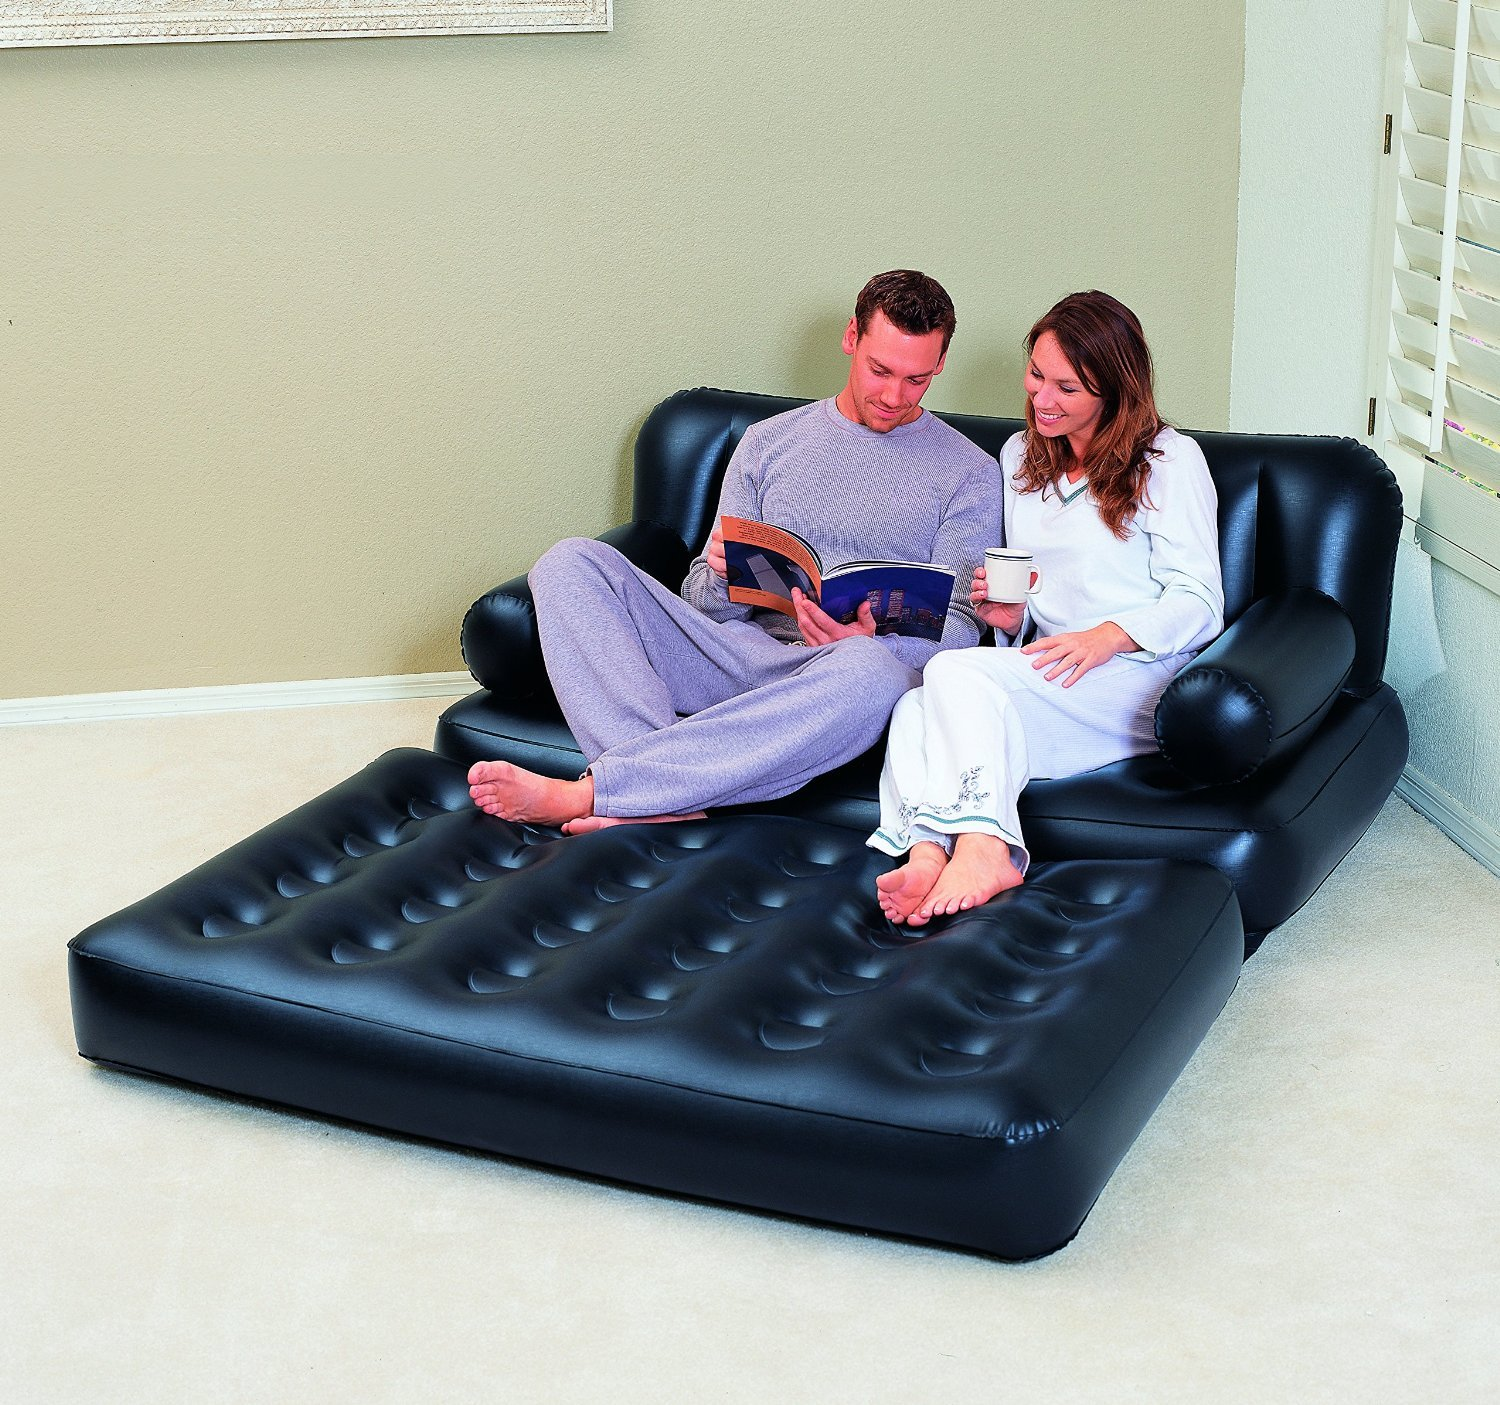 Multifunctional 5 in 1 Inflatable Double Air Sofa Chair Couch Lounger Bed Mattress Bestway